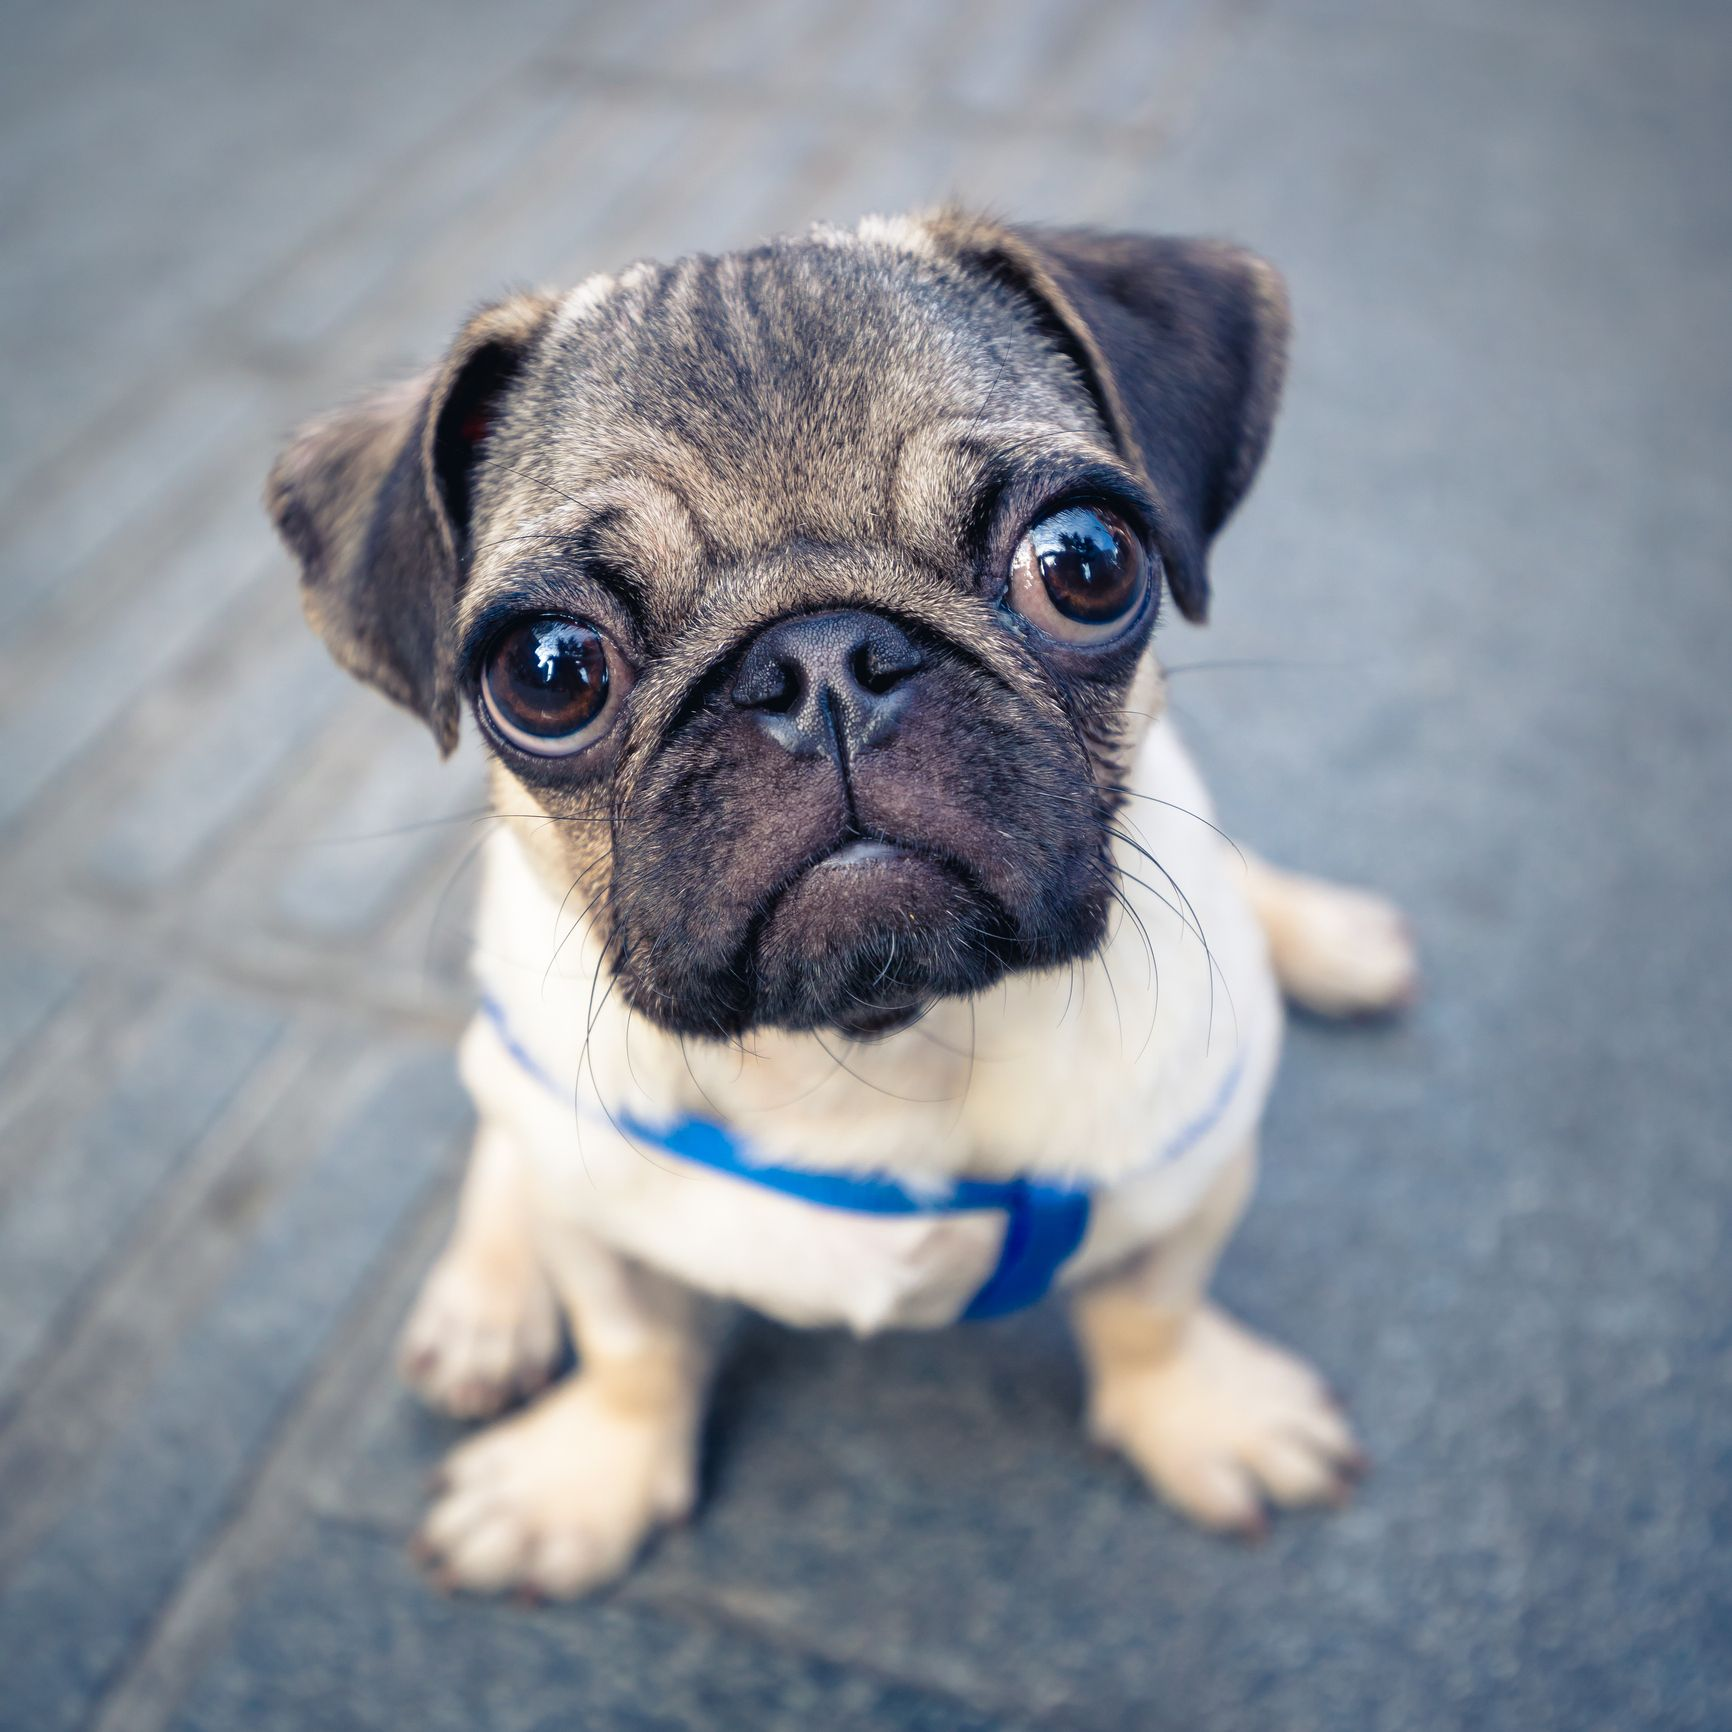 25 Cutest Puppies Of All Time These Photos Will Make You